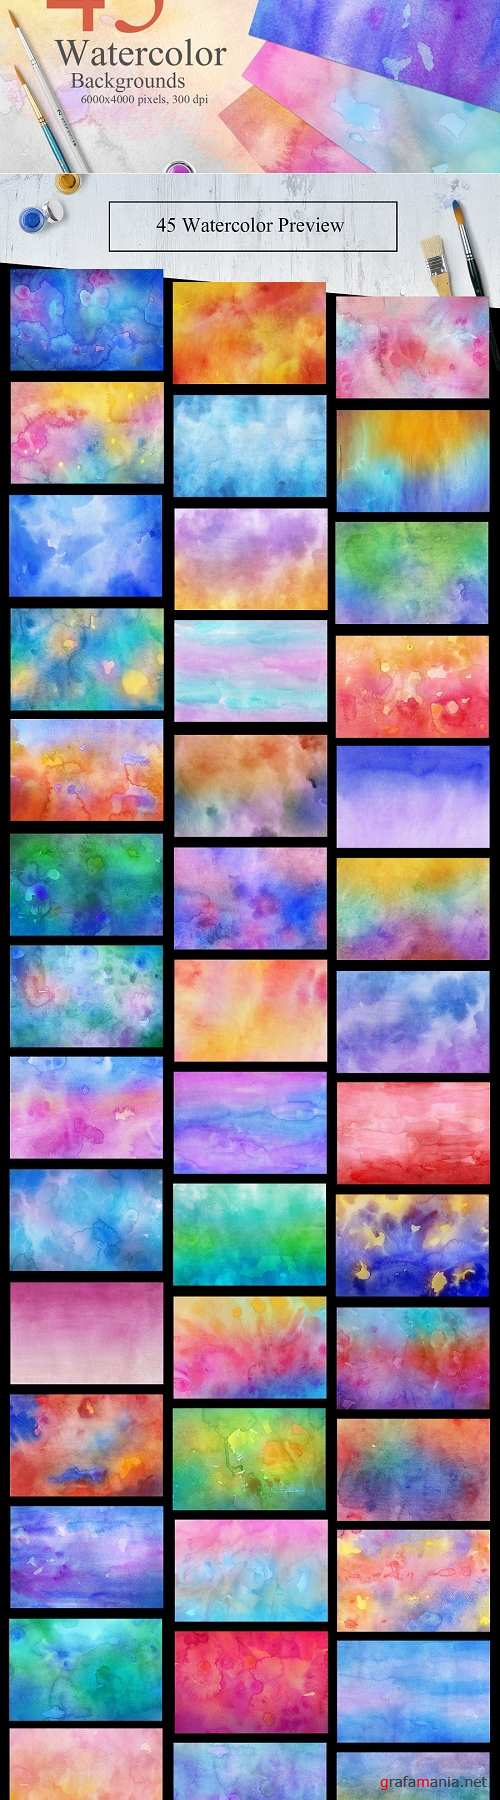 45 Watercolor Backgrounds - 2269084